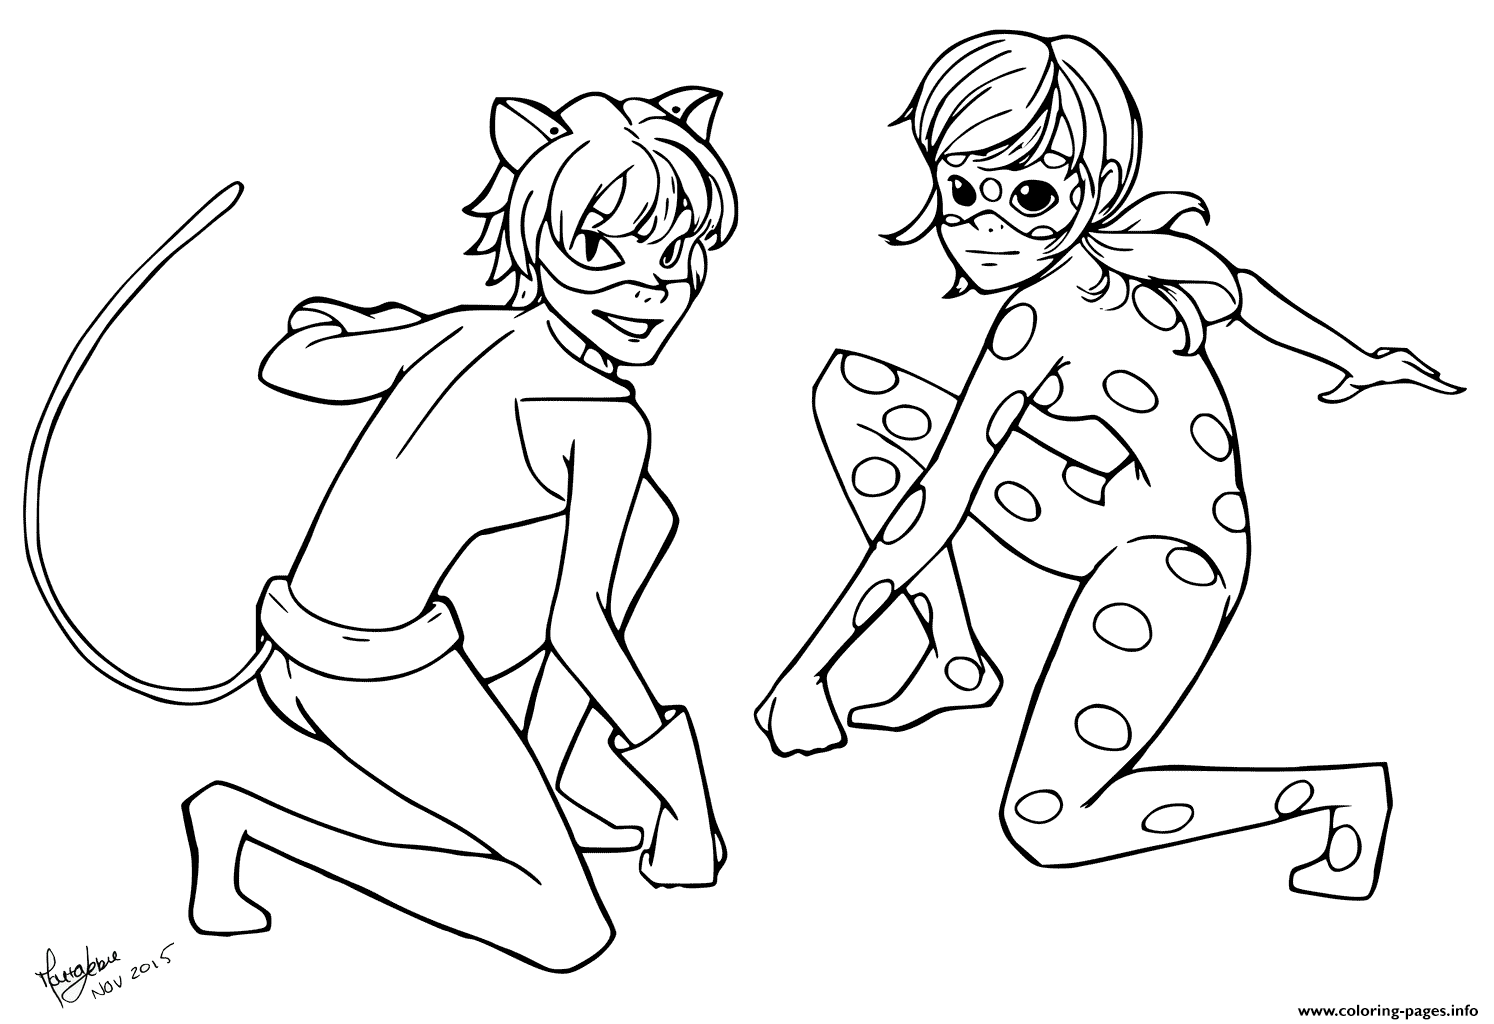 miraculous ladybug coloring pages free download printable